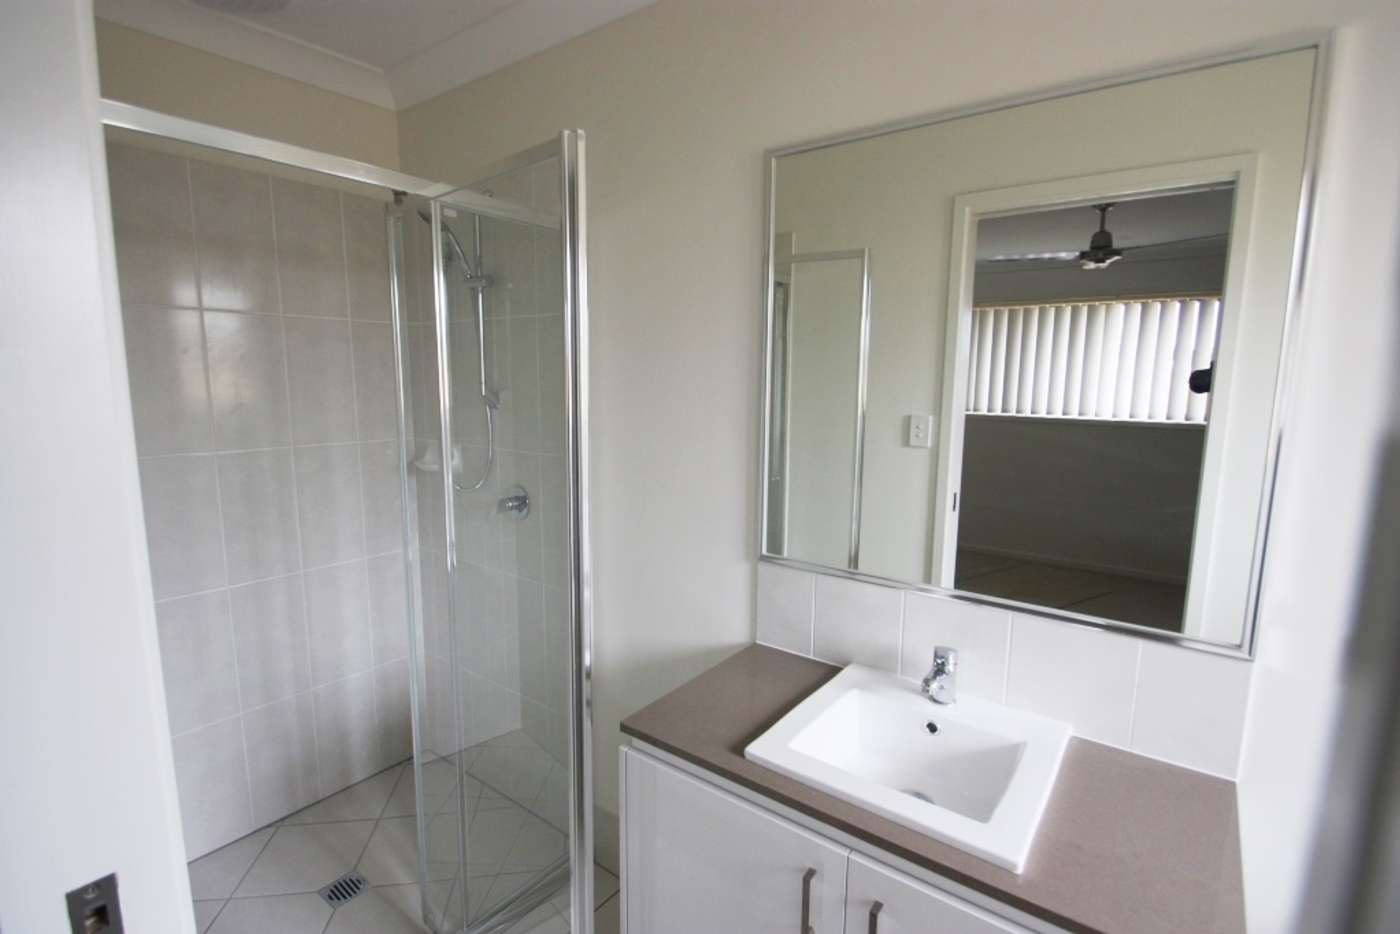 Seventh view of Homely house listing, 2 Ioannou Place, Coomera QLD 4209